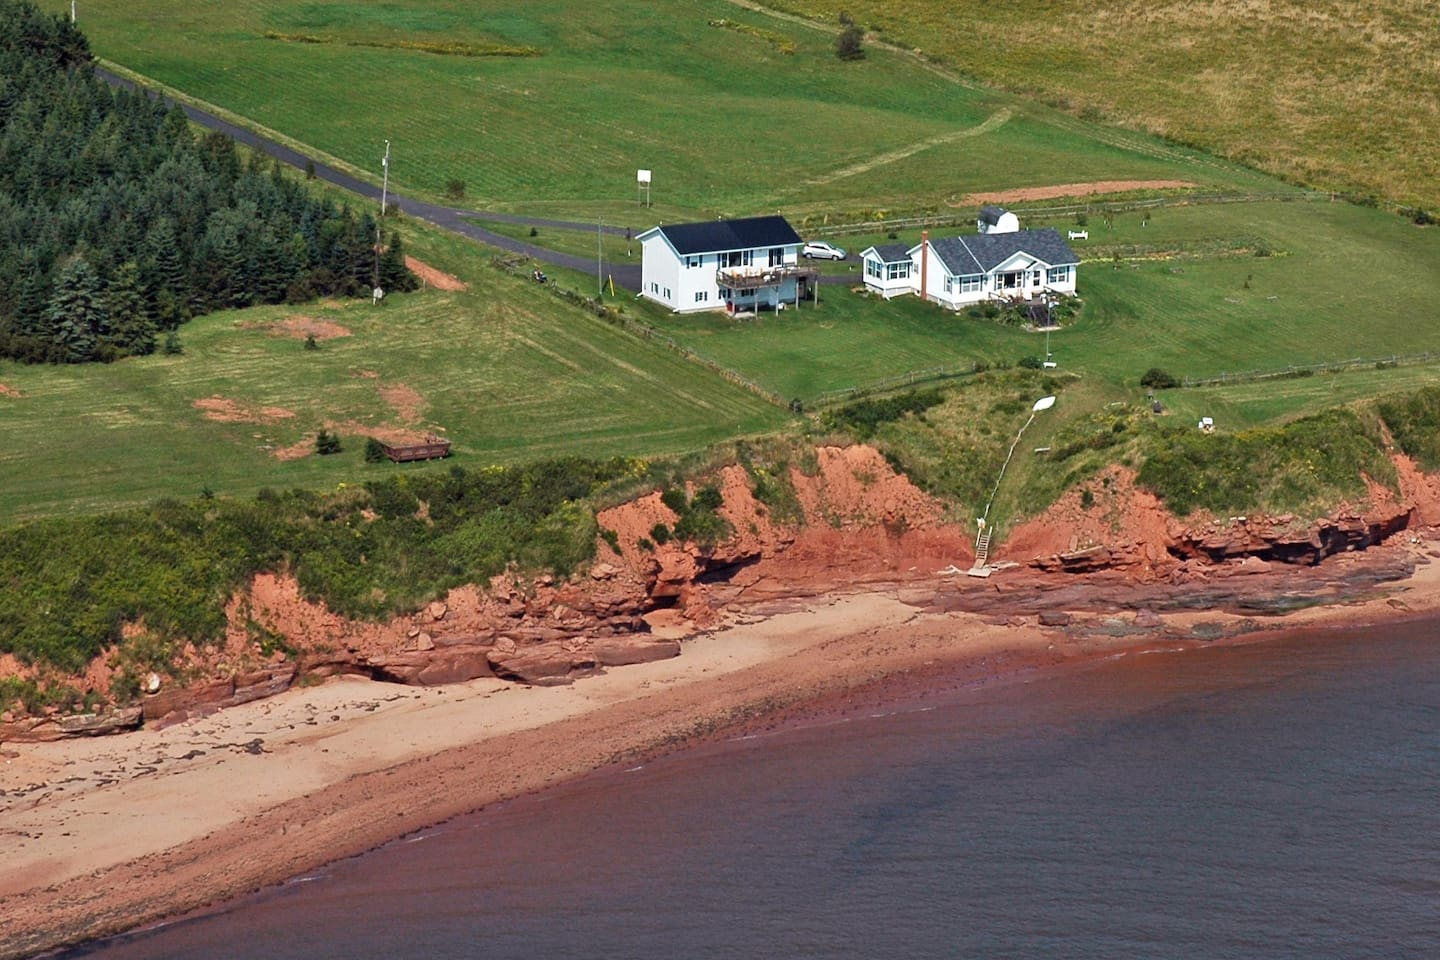 Kate's Cove Aerial View shows our beautiful sandy beach coves that you can access from the stairs at the edge of the property.